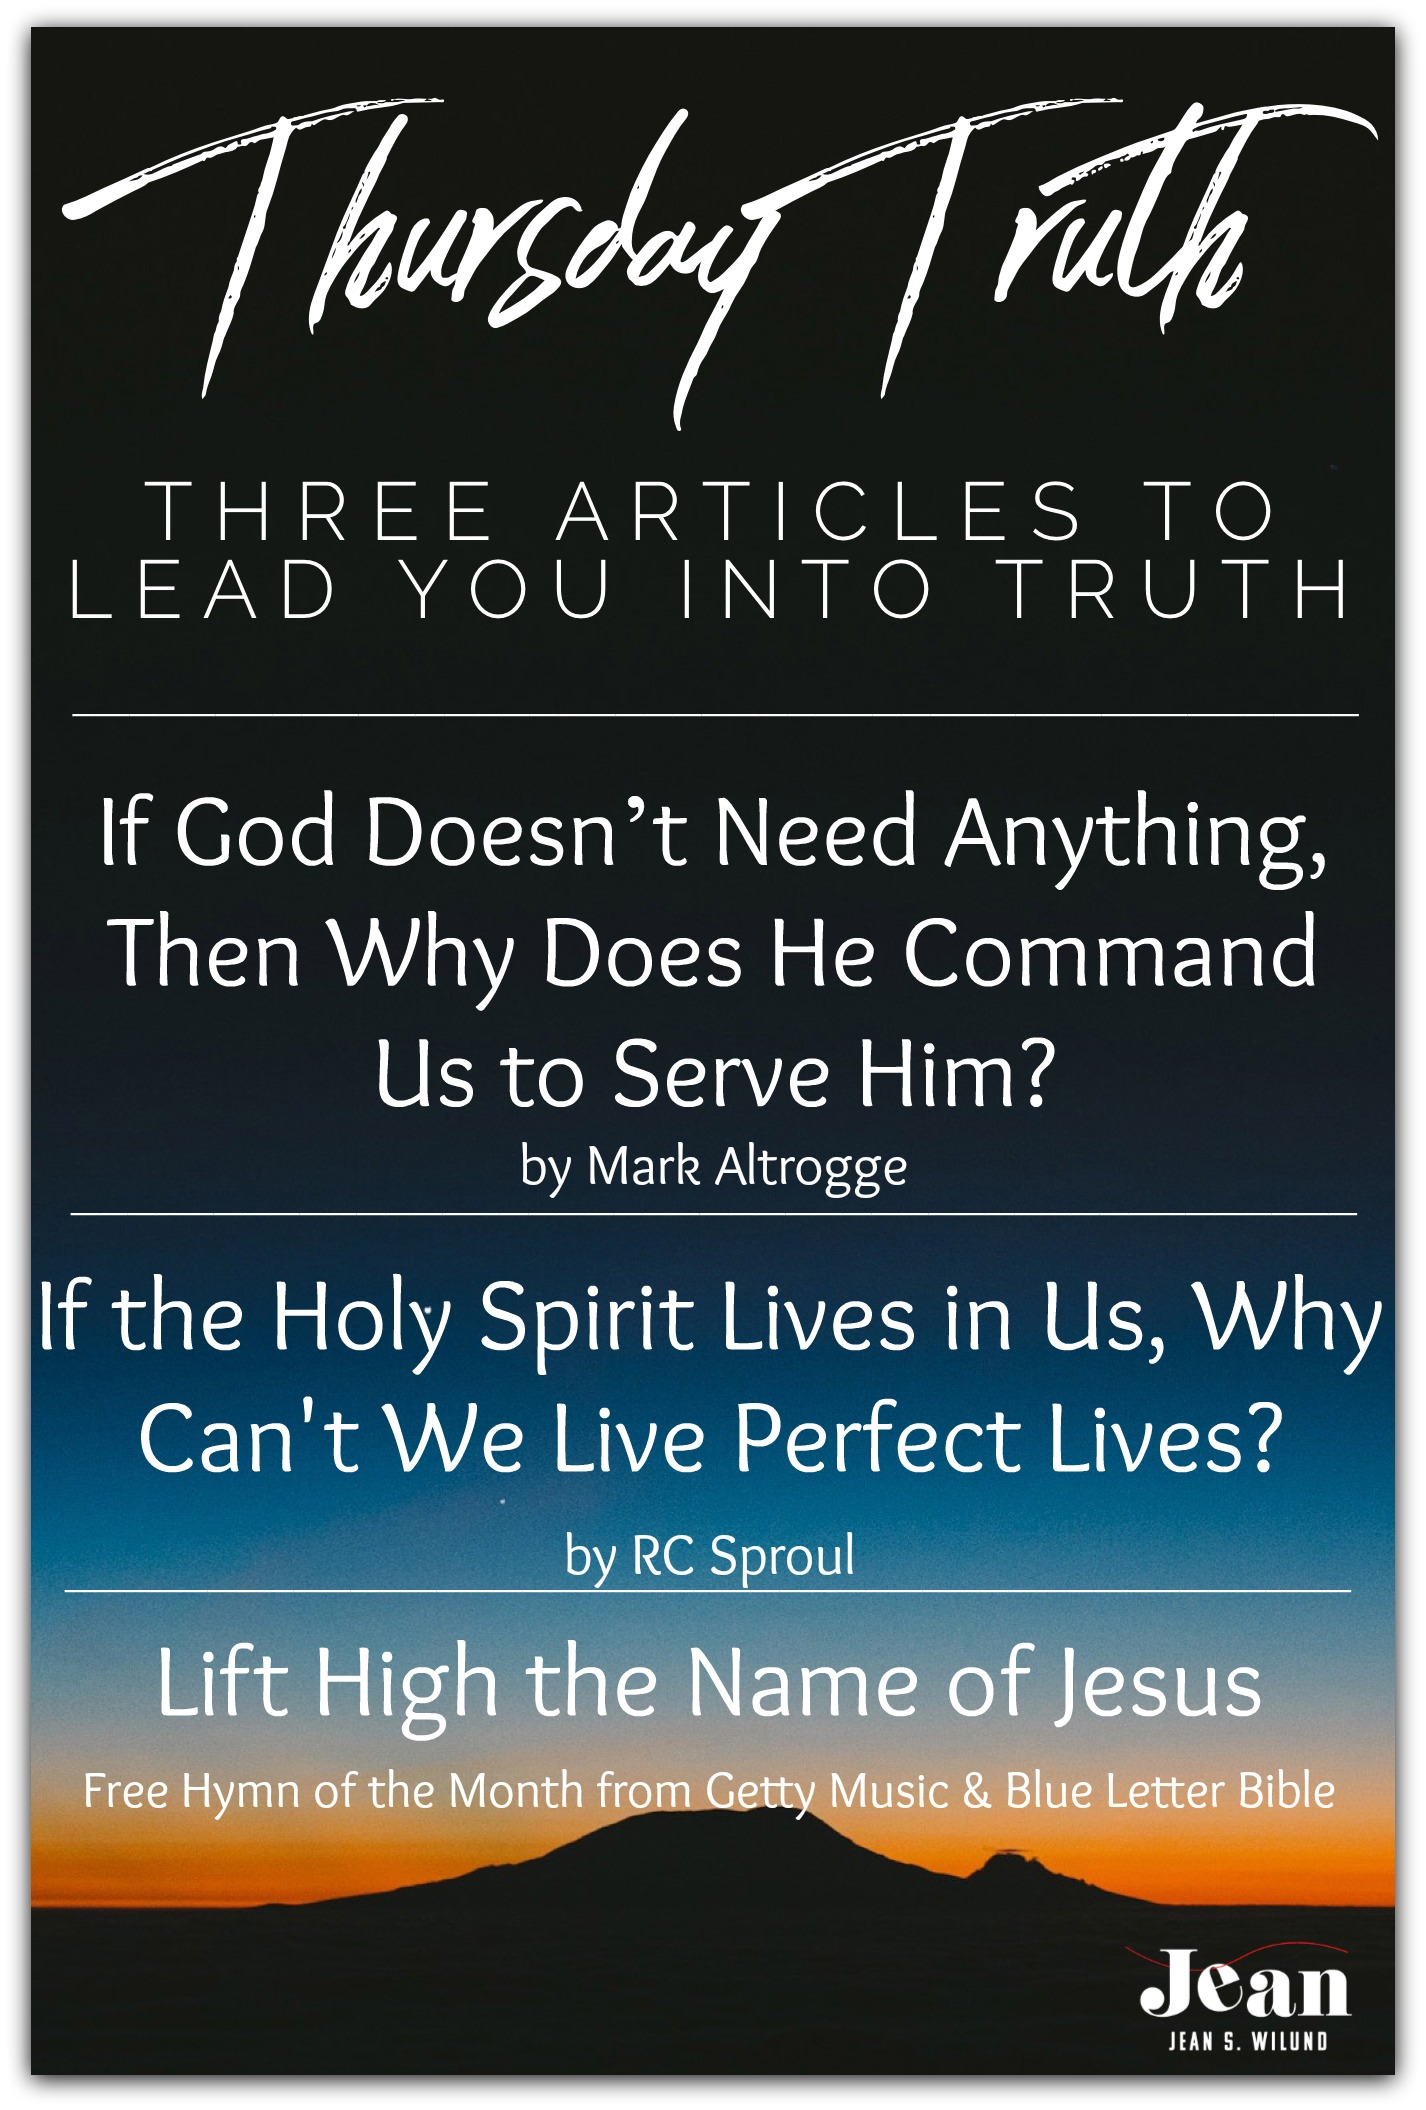 Thursday Truth: Three Articles To Lead You into Truth 09-20-18